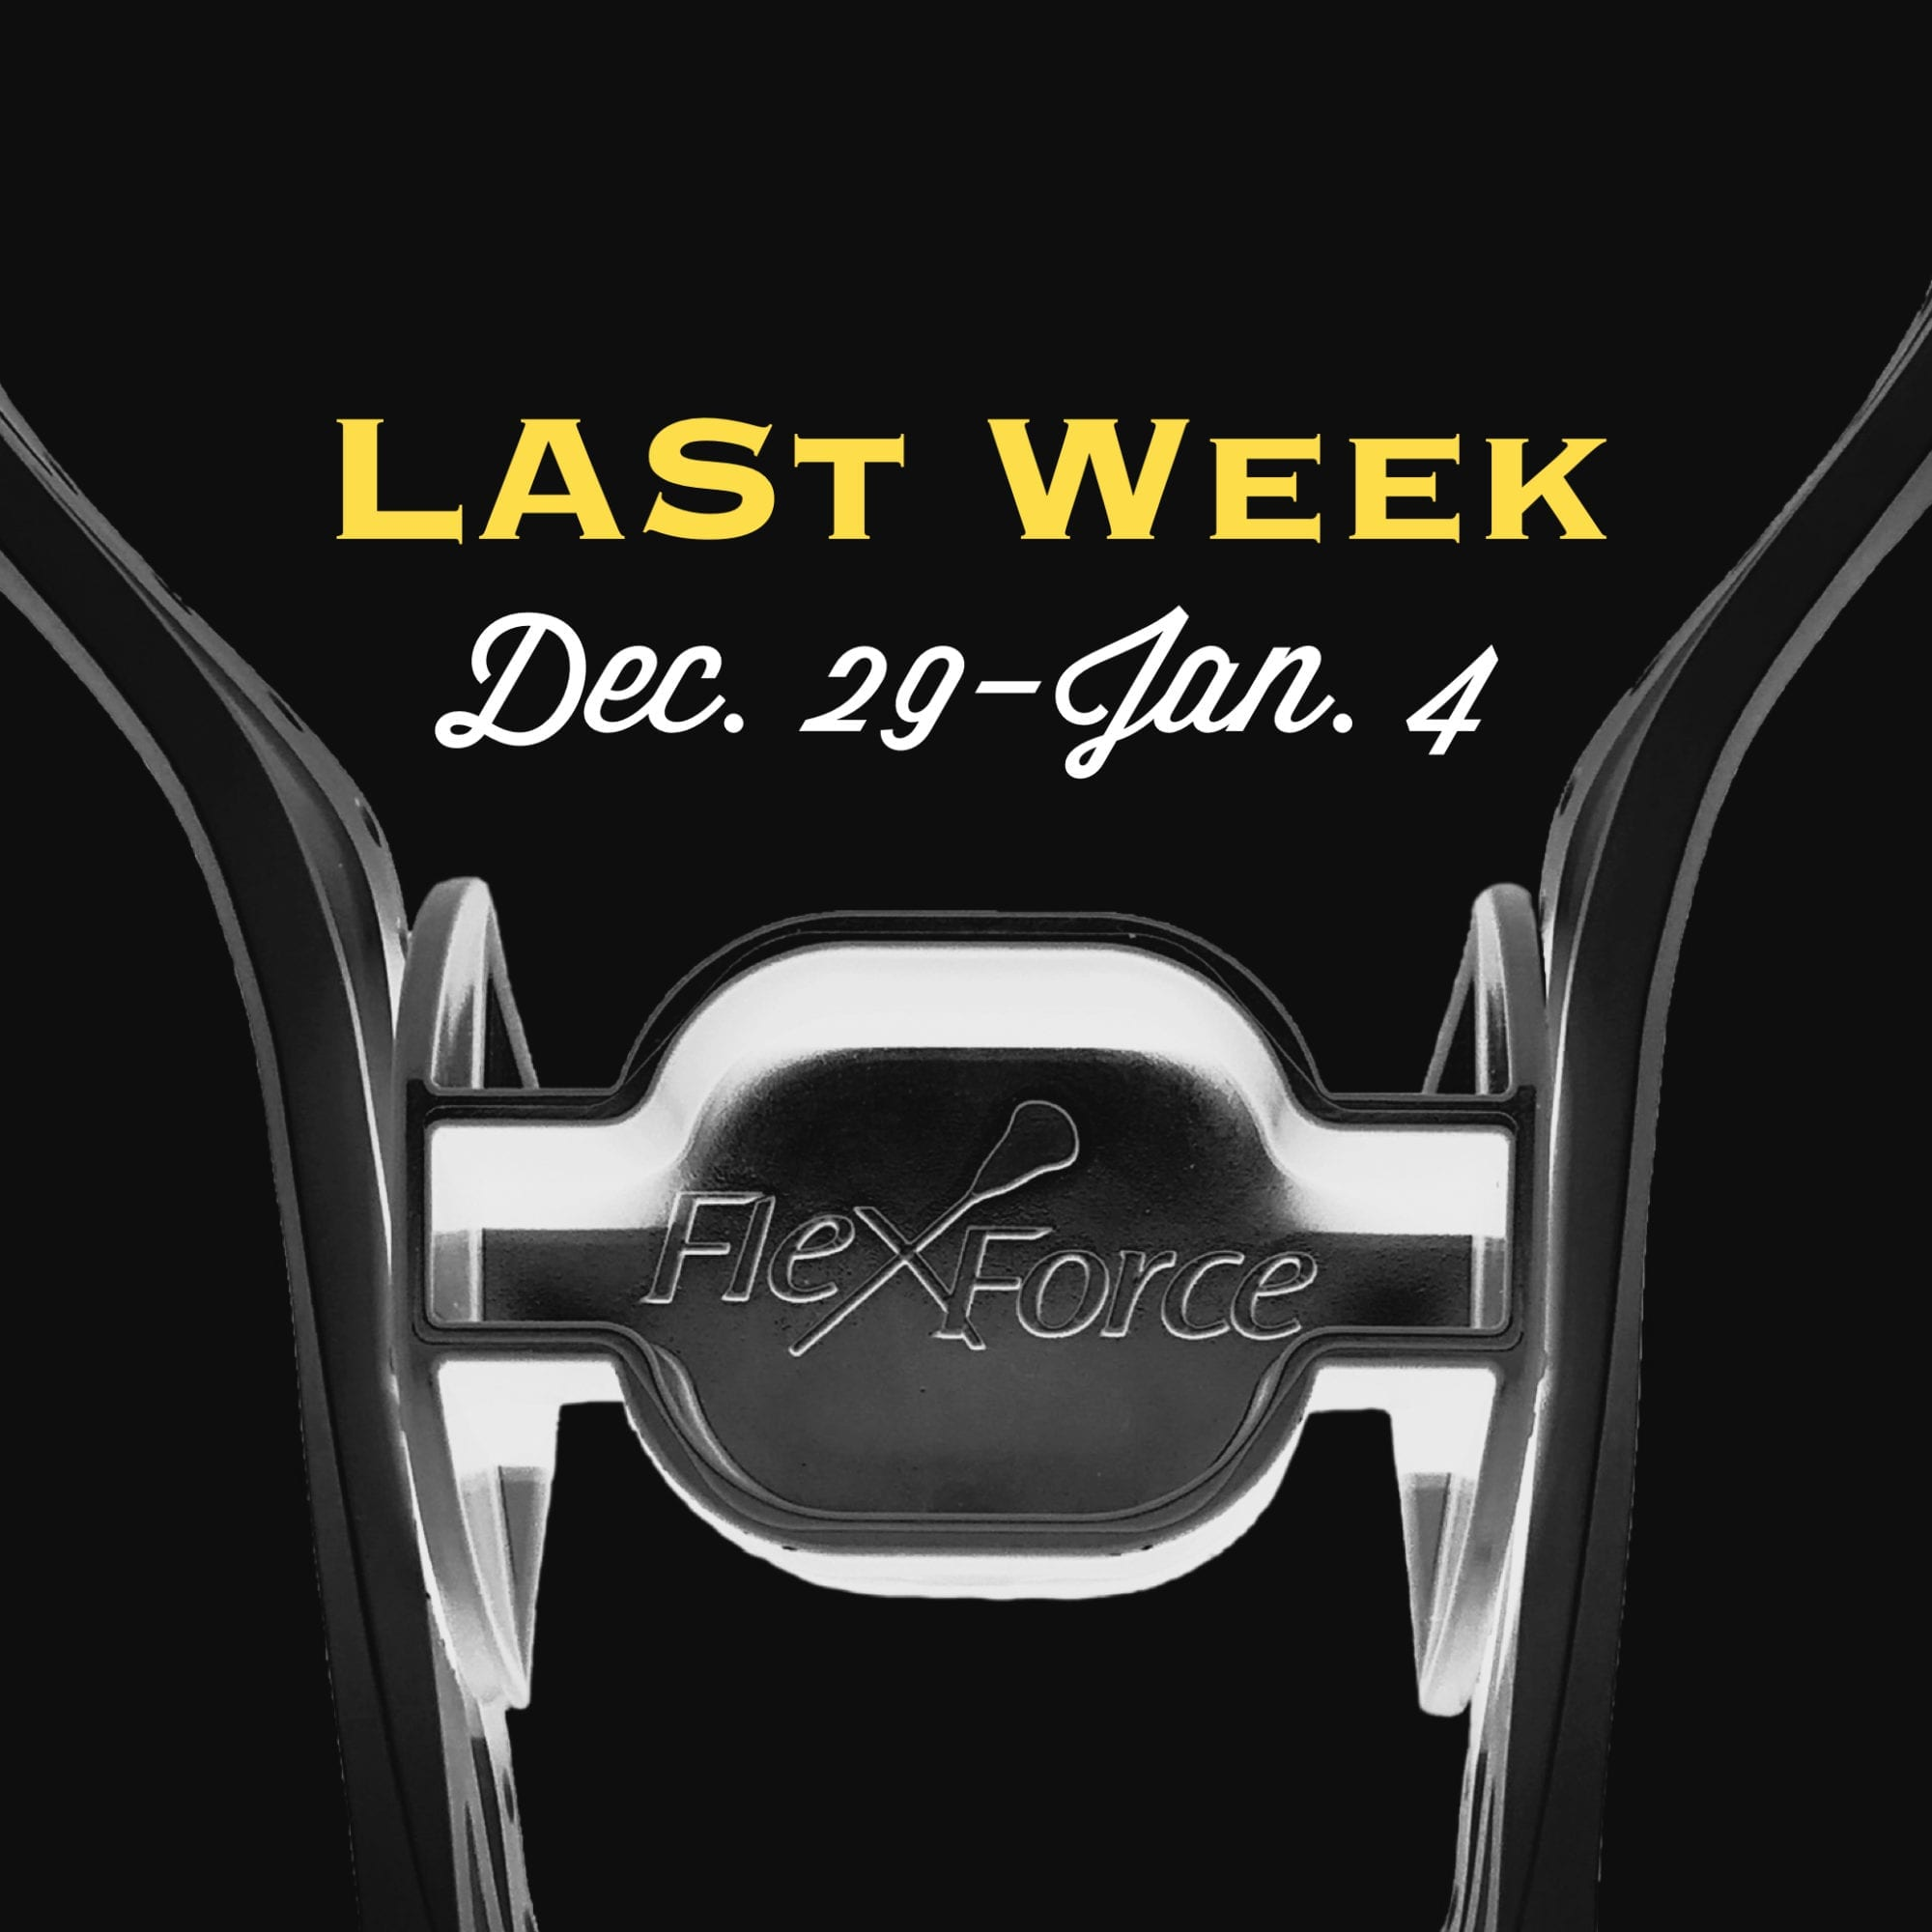 Chris Bocklet of Chrome LC suffered severe head trauma after a longboarding accident recently, leading the lacrosse news of the week.